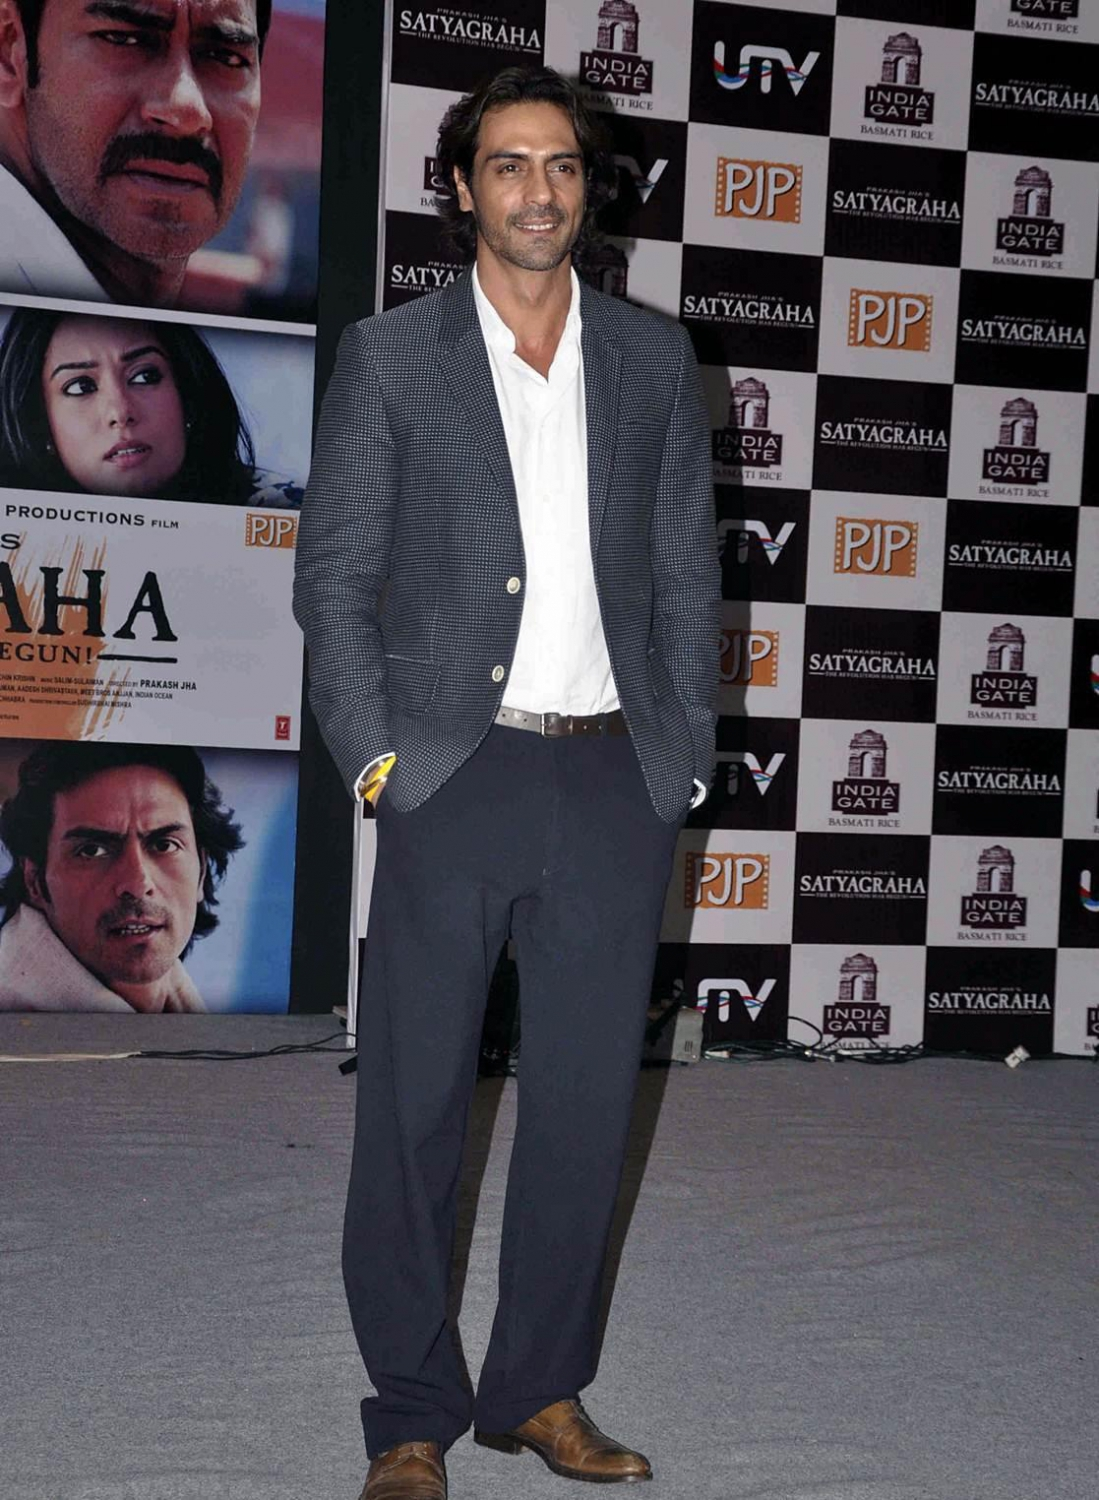 http://bp.funrahi.com/2013/08/satyagraha-movie-promotion-with-india-gate-basmati-rice-amrita-rao-ajay-devgn-arjun-rampal/satyagraha-movie-promotion-with-india-gate-basmati-rice-amrita-rao-ajay-devgn-arjun-rampal-59852.jpg